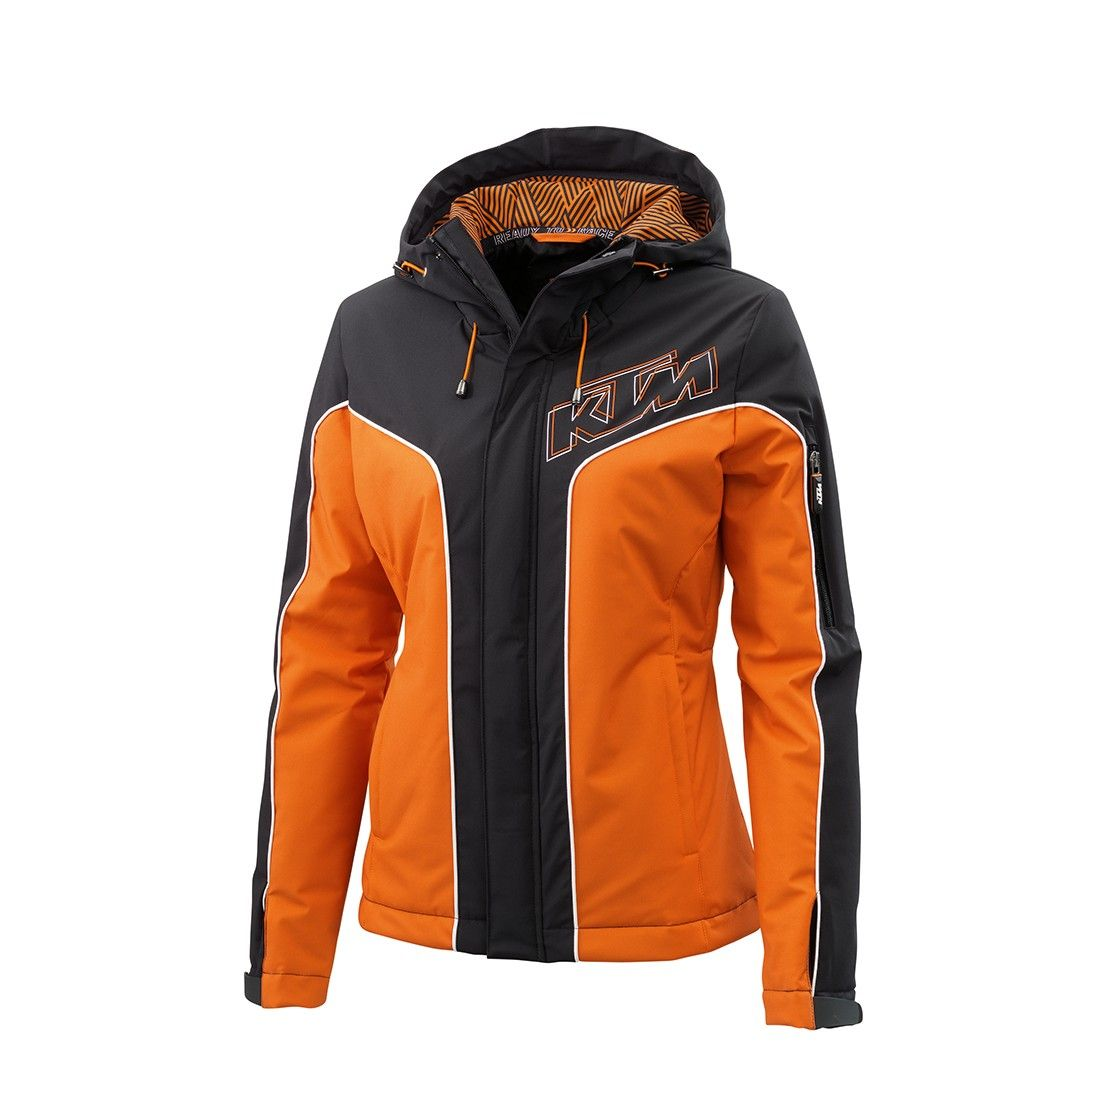 Dirtnroad Com Off Road Road Apparel And Accessories Soft Shell Jacket Ktm Clothing Jackets